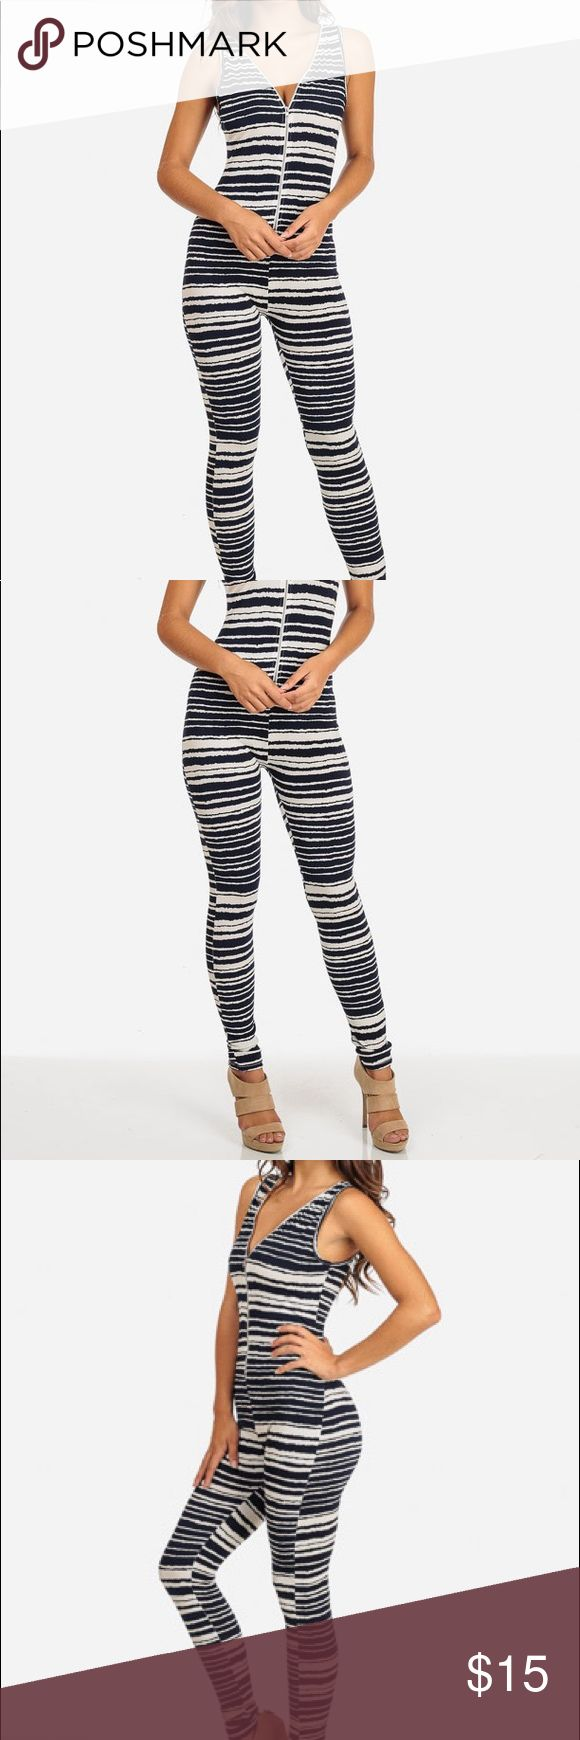 """💕BrandNew STRIPE DESIGN BODYCON JUMPER💕 Sleeveless jumper with a navy and white stripe design, functional zipper in the front so you can adjust the neckline and get into it with ease. Super stretchy material and bodycon tight fit to show off all your sexy curves. Made from 95% polyester and 5% spandex. Length from underarm down approx 47"""" and inseam 29"""". MADE IN USA🇺🇸check my closet for more brand new items. Topia Pants Jumpsuits & Rompers"""